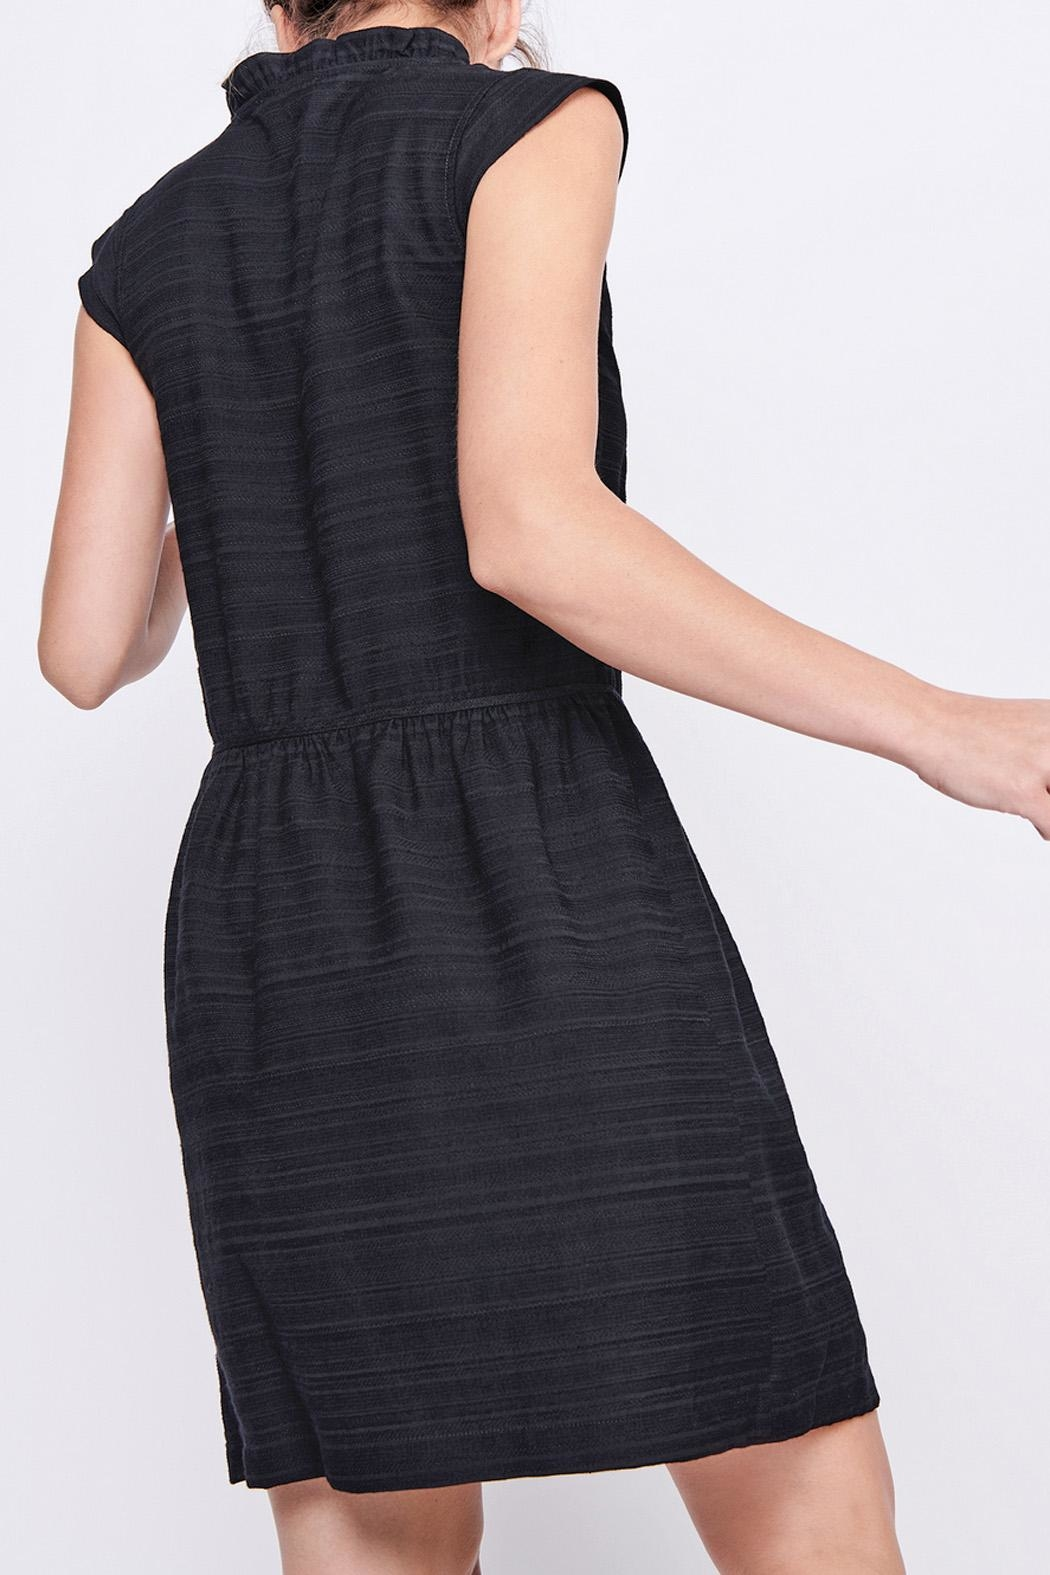 Cotelac Piper Black Dress - Back Cropped Image